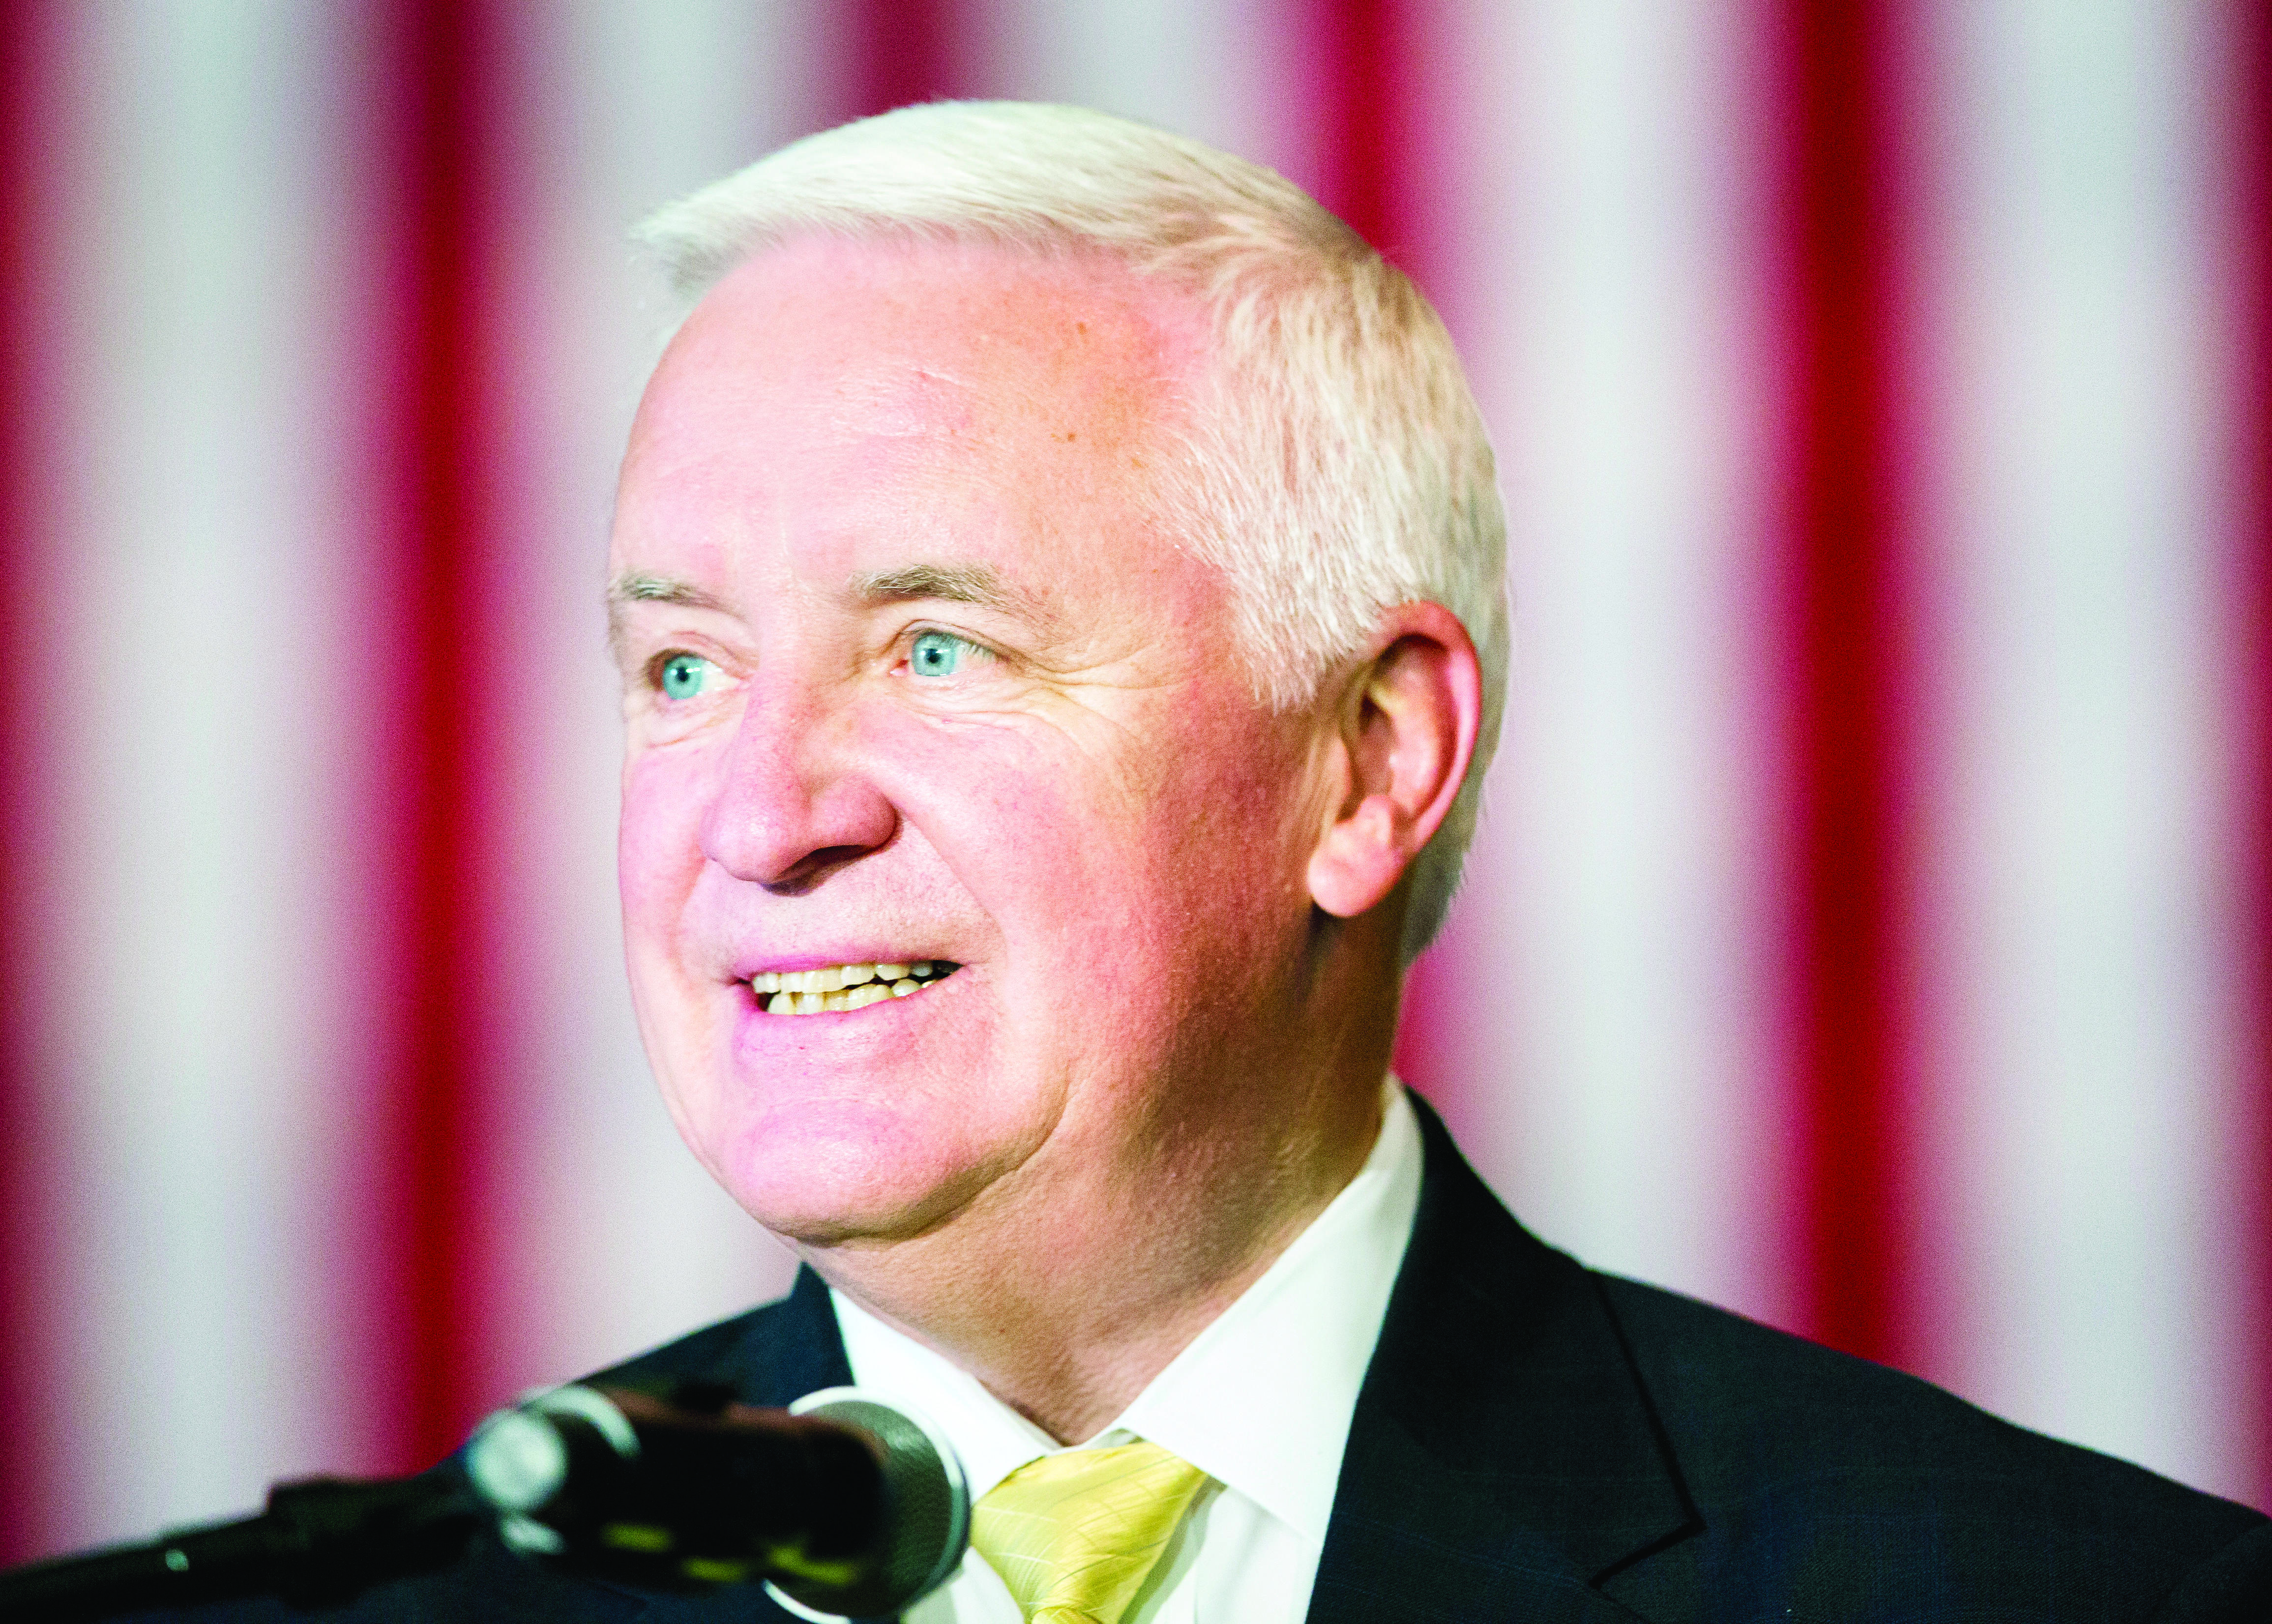 In 2012, former Gov. Tom Corbett axed general-assistance grants for the poorest of the poor.